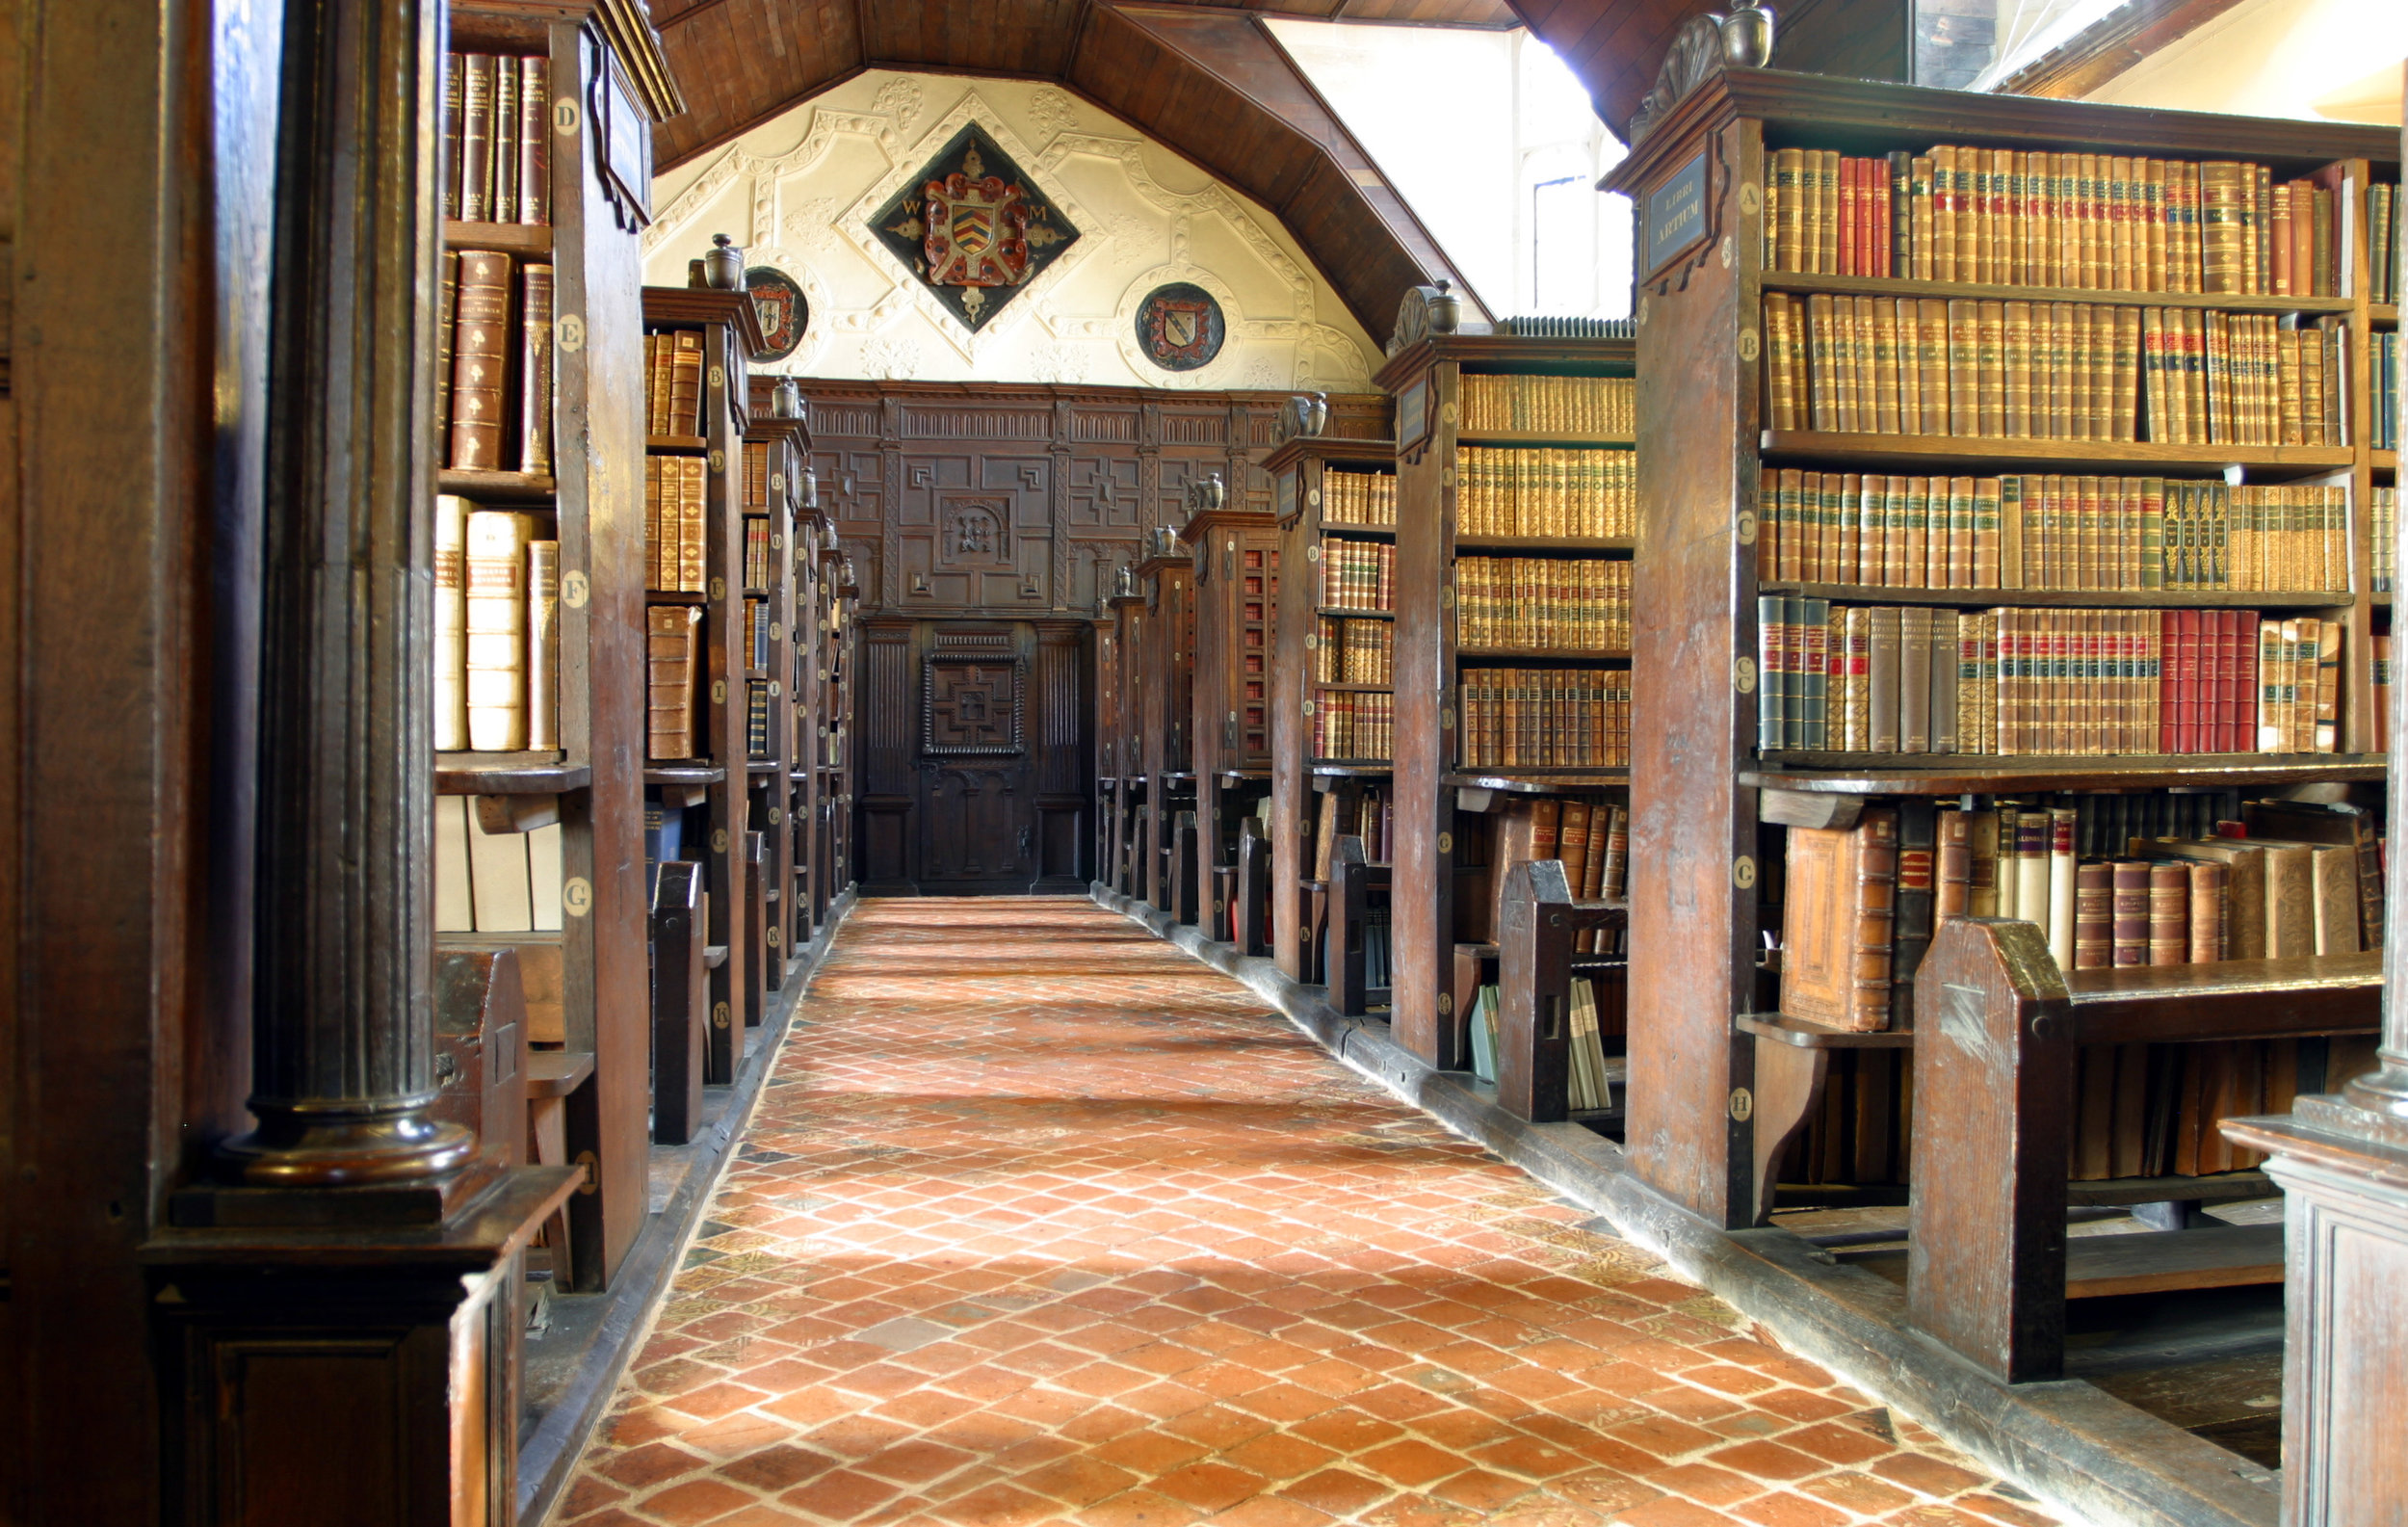 Merton_College_library_hall.jpg